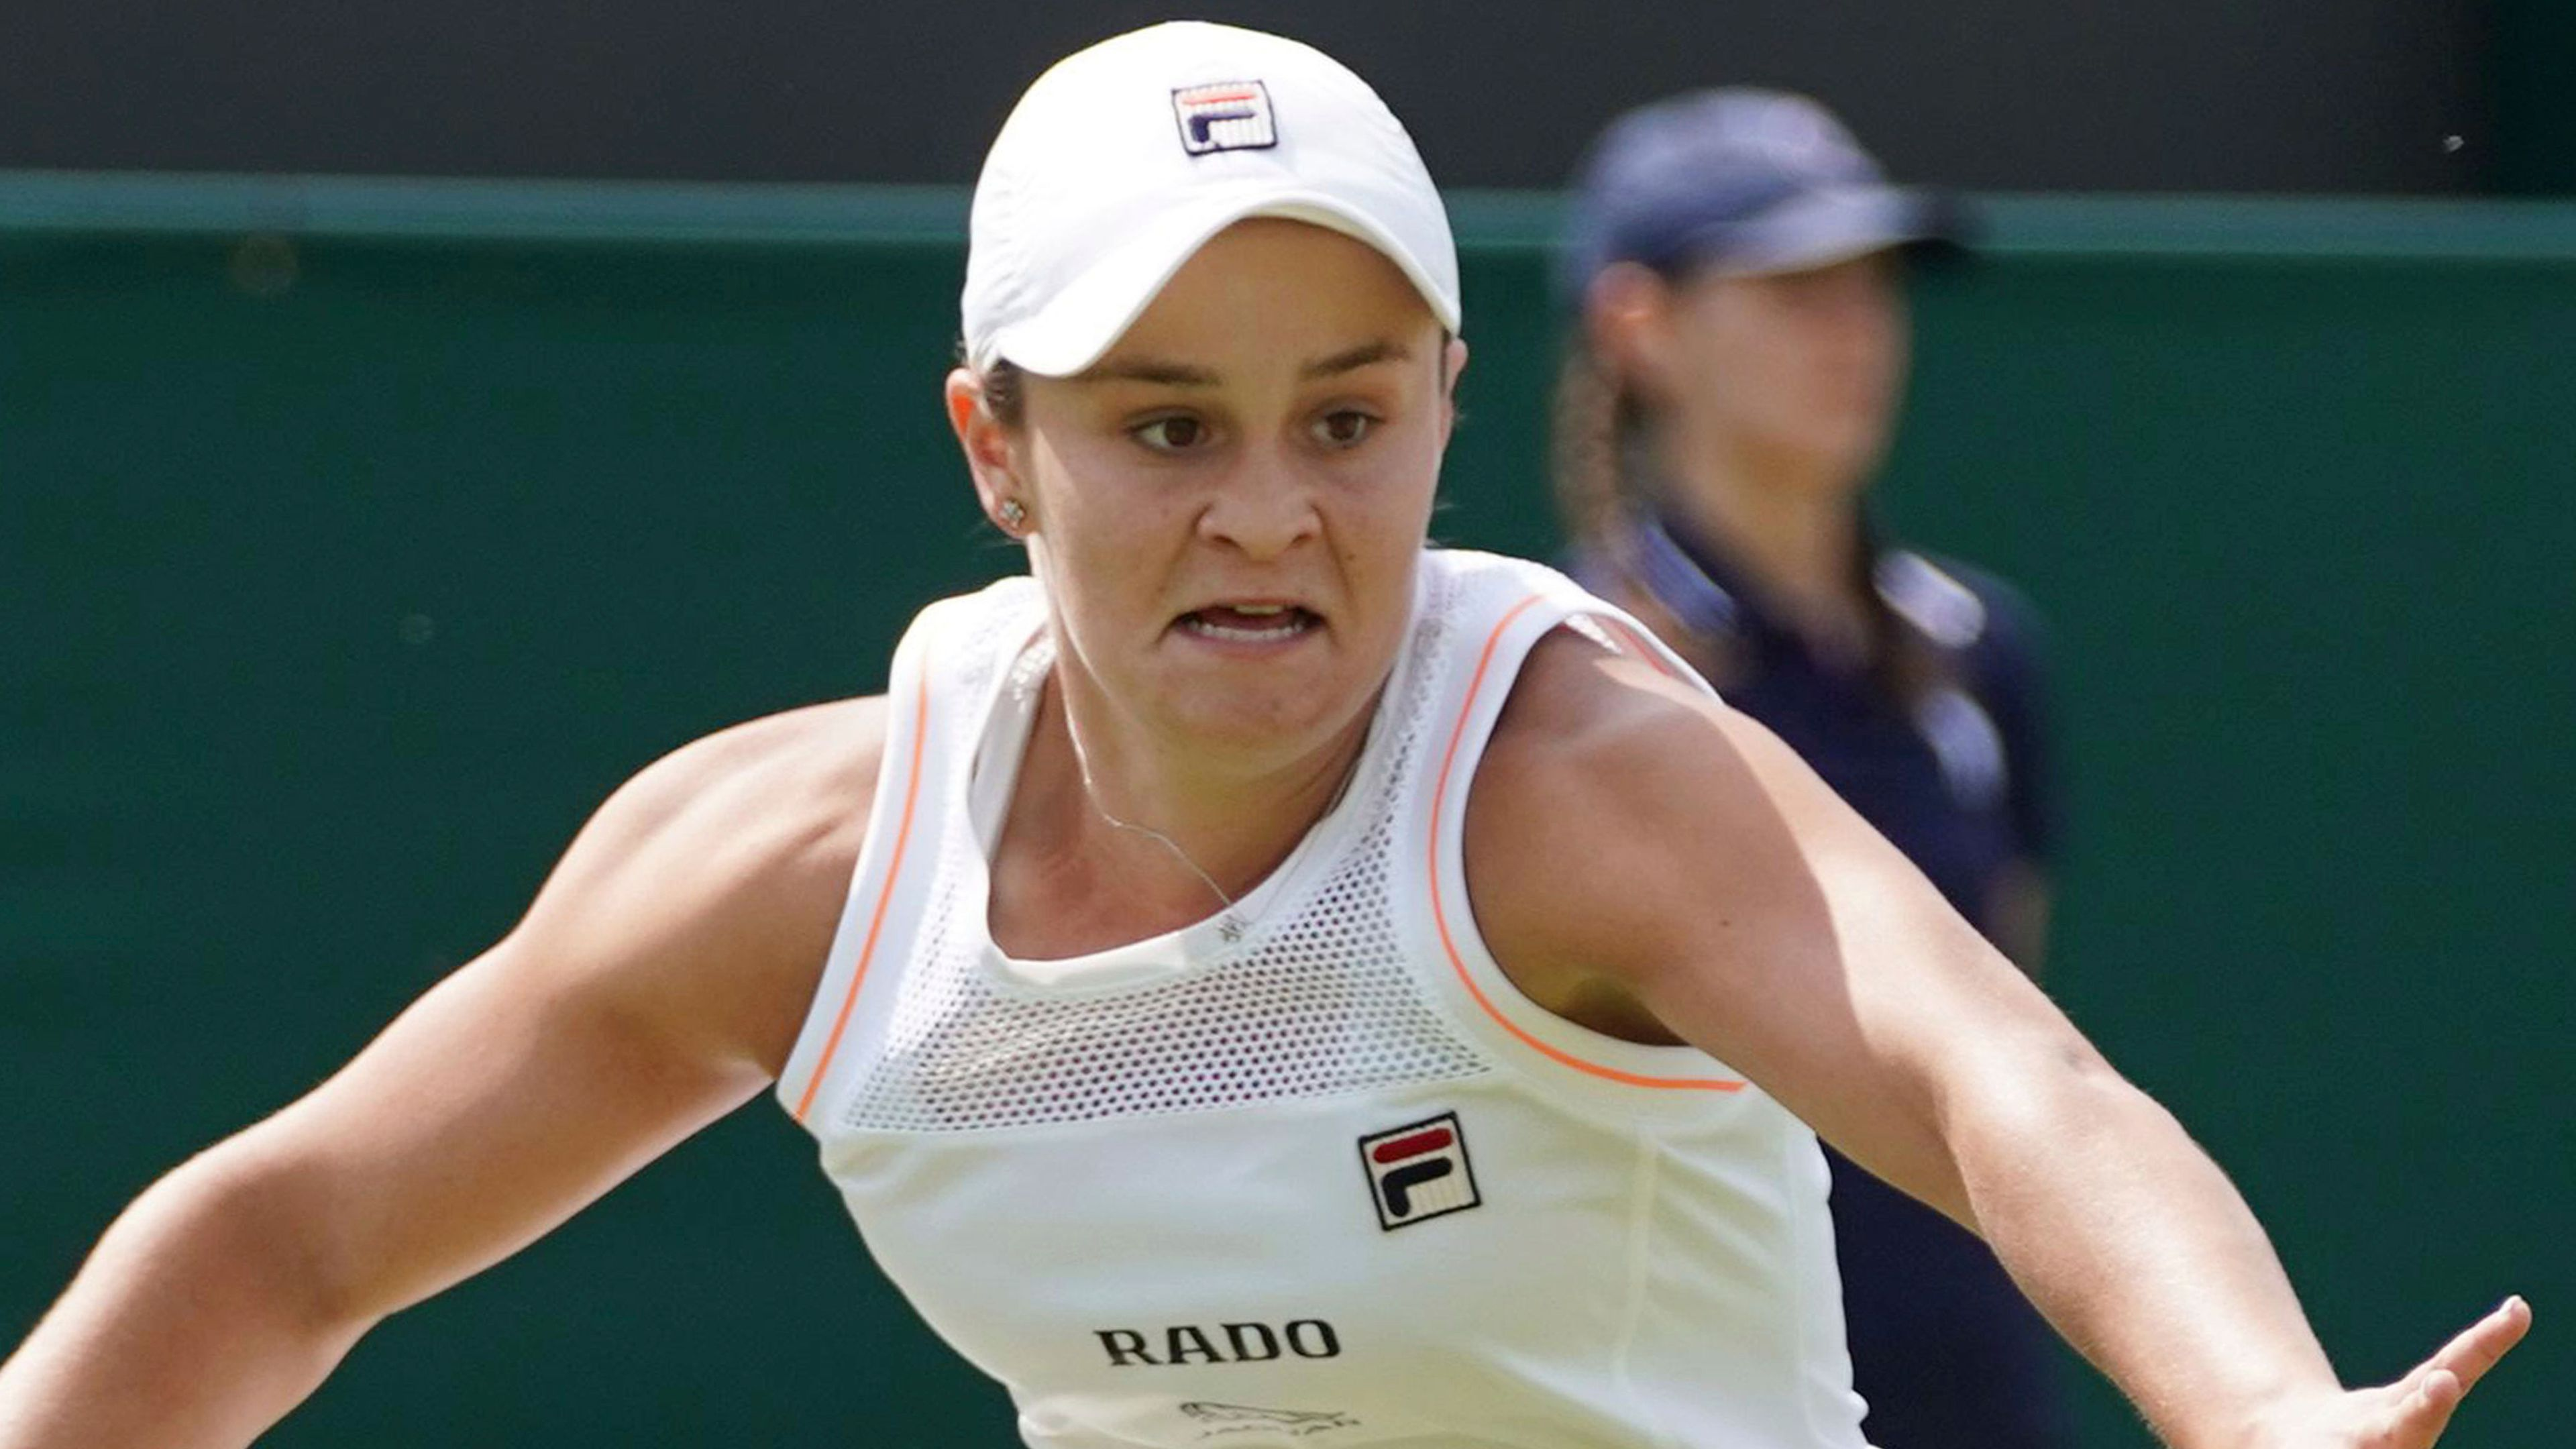 Aussie Ashleigh Barty increases her lead as world number one tennis player